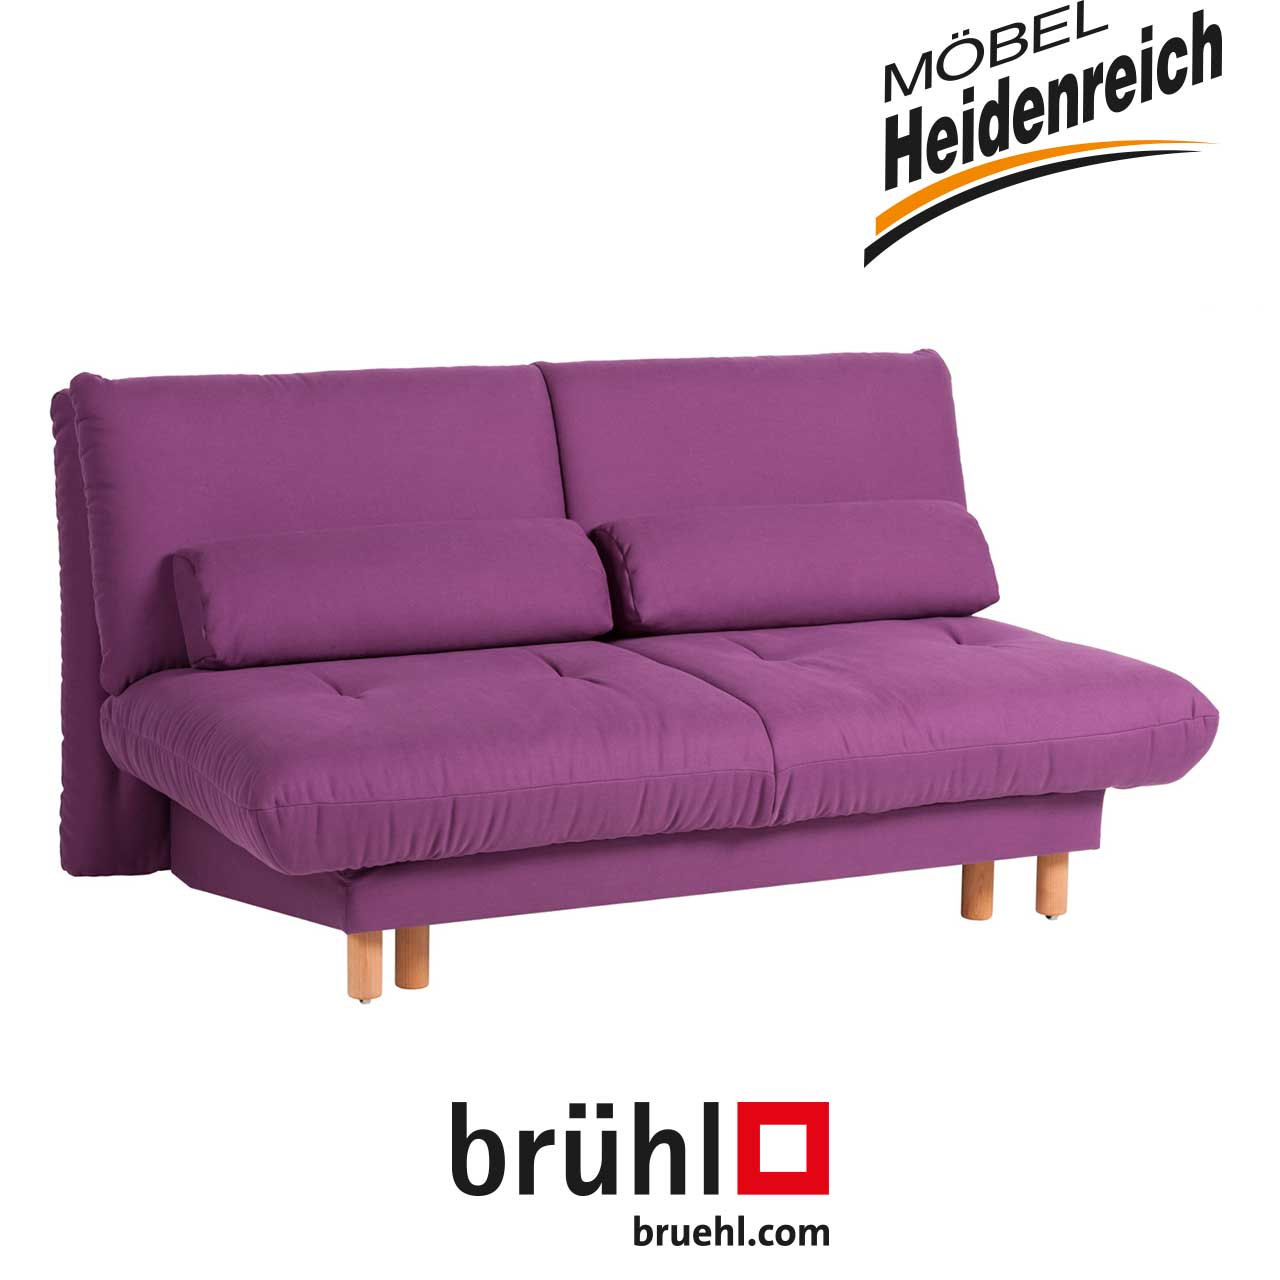 Full Size of Lilah Corner Sofa Lilac Throws 3 Piece Suite Queen Sleeper Lila Chair Bed Uk Samt Emerald Craft Chesterfield Set Covers Ikea Cushions Sitzer Grau Esstisch Sofa Sofa Lila